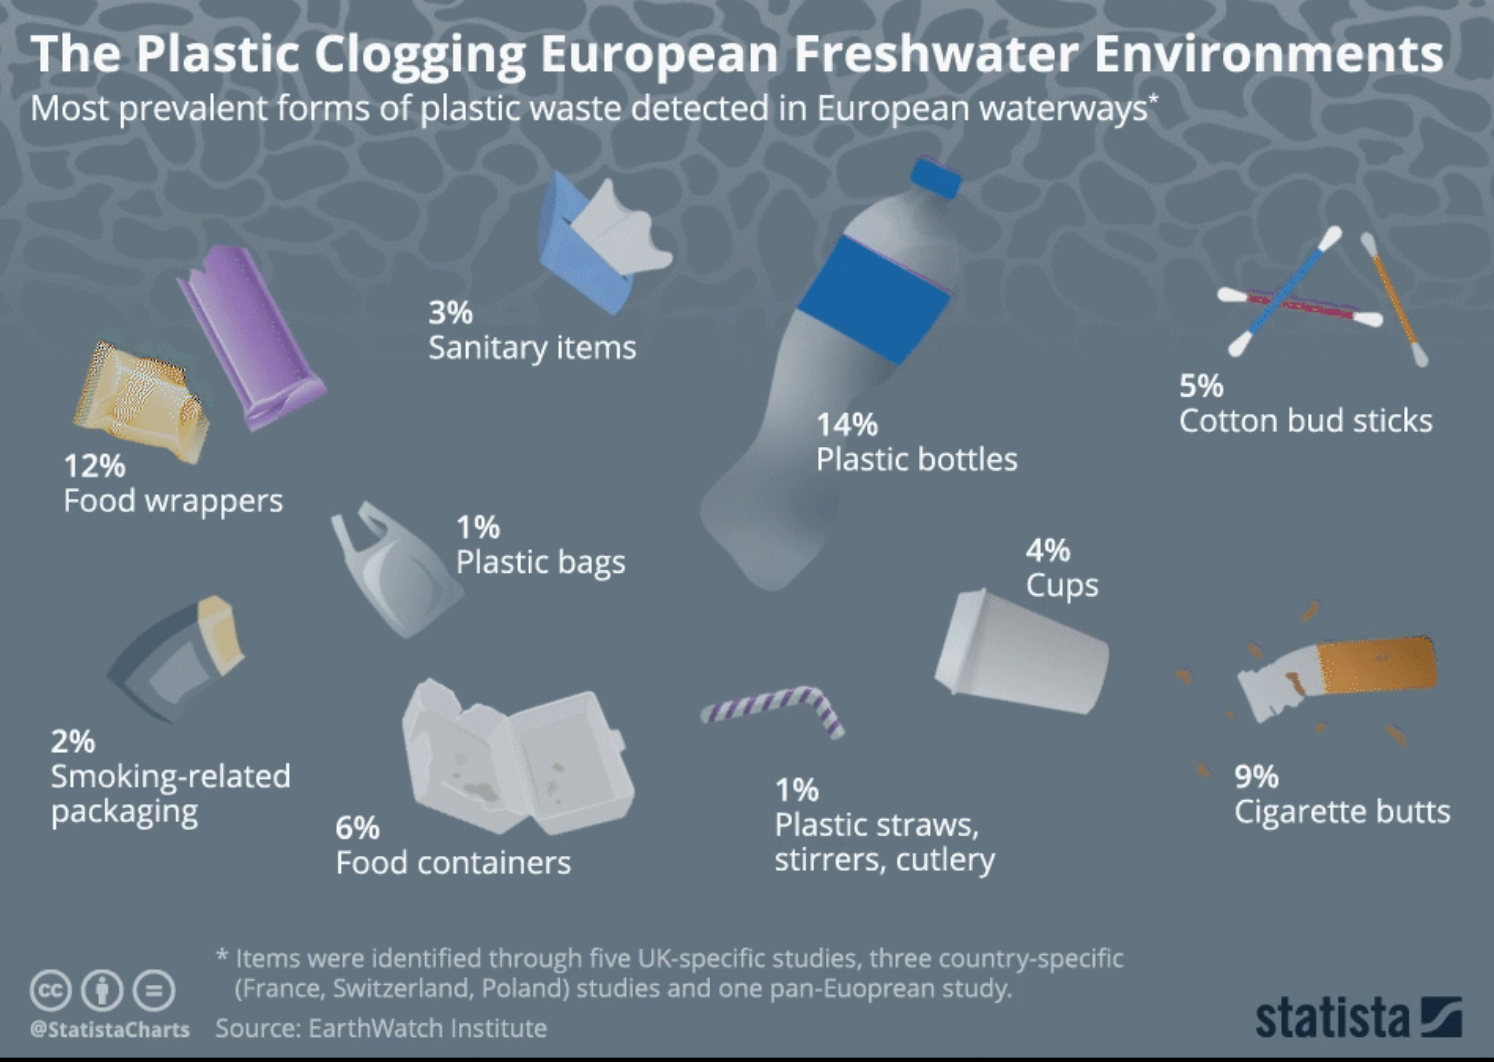 Bottles, food wrappers and cigarette butts are the three main plastic waste items found in Europe's waterways